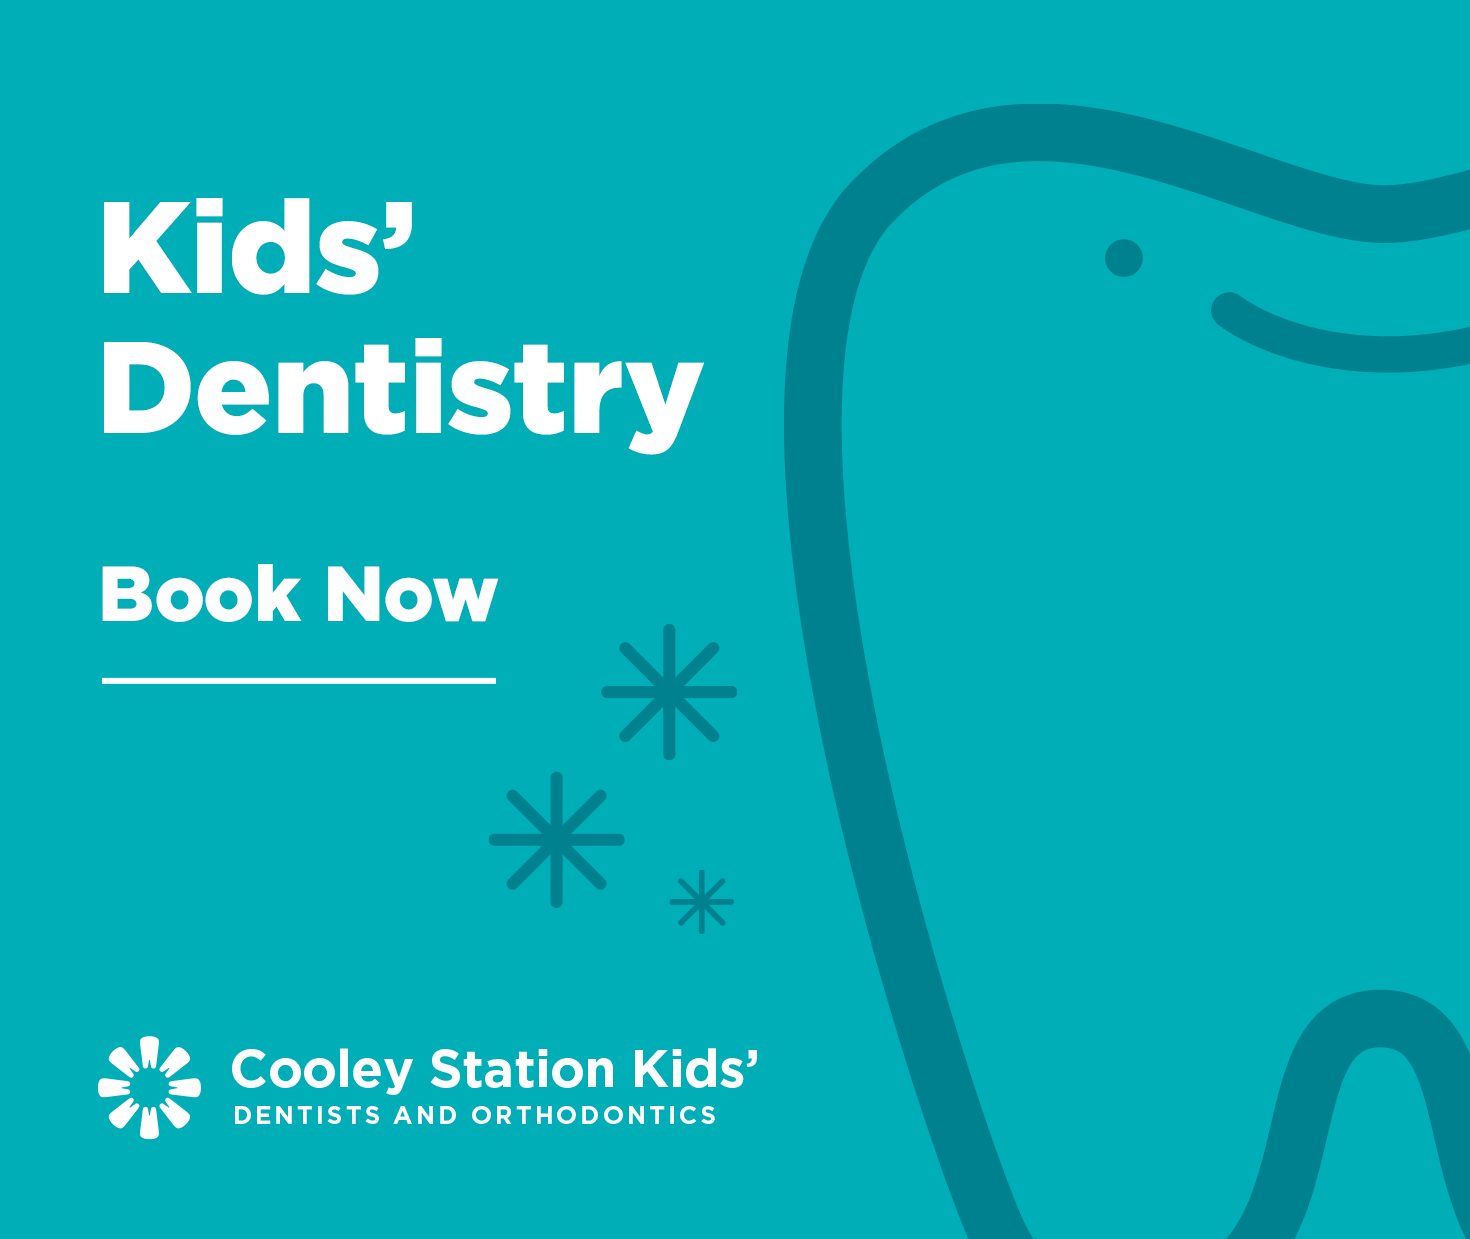 Book an appointment with our Kids' Dentistry.